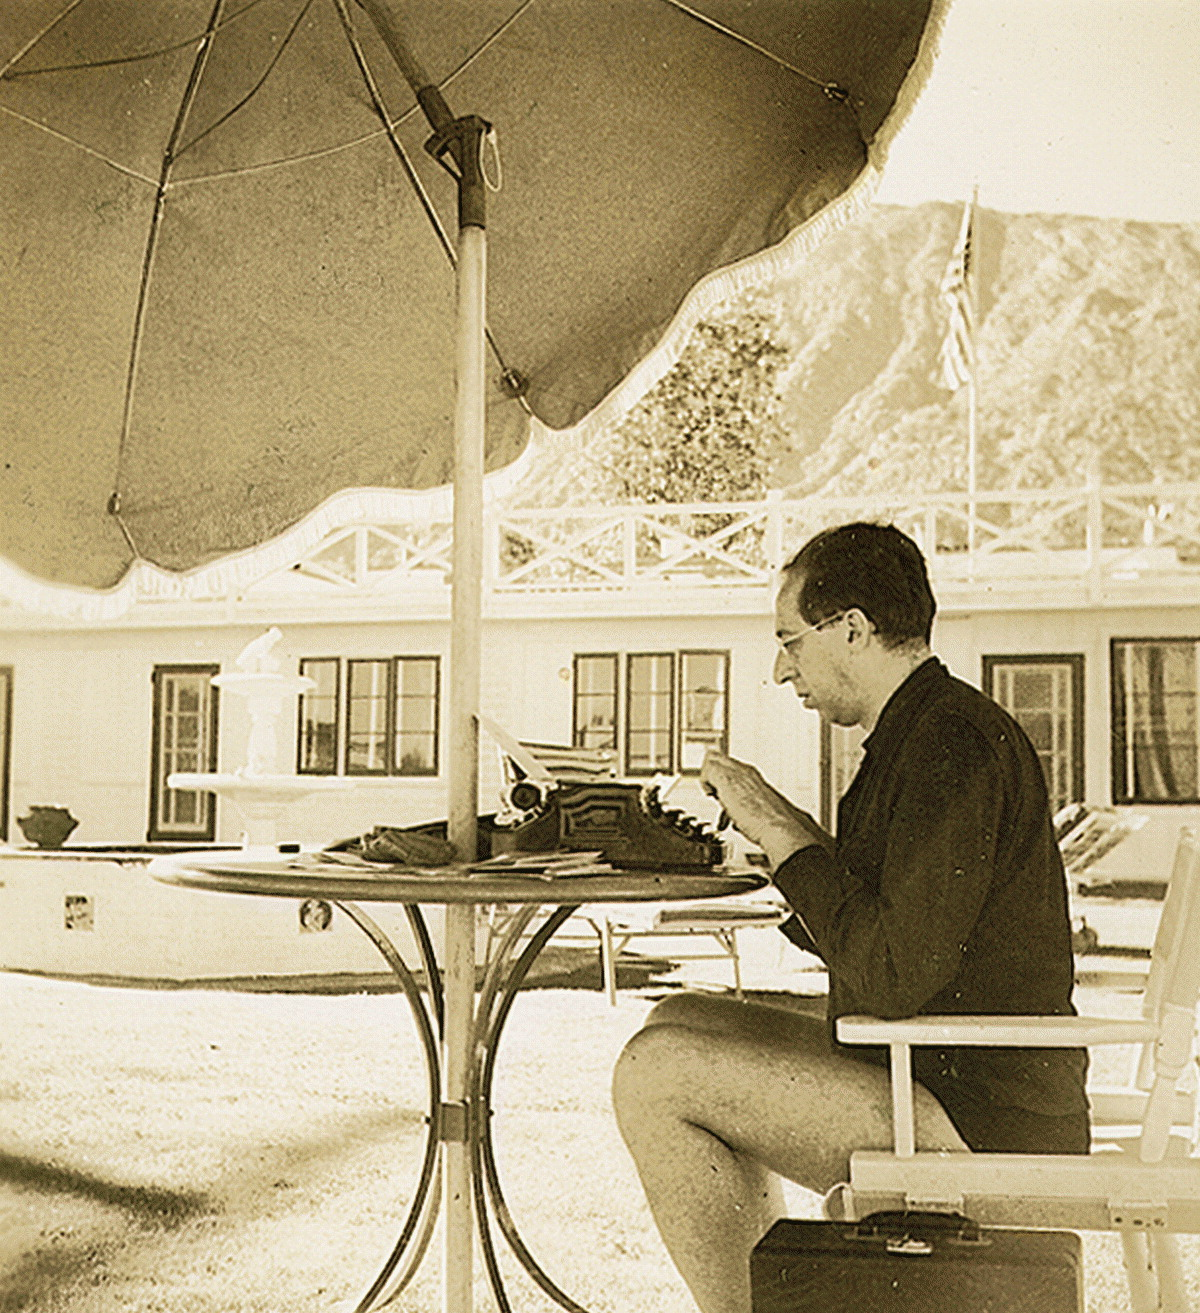 Composer Aaron Copland at his typewriter in California; Aaron Copland Collection, Library of Congress, circa 1939 or 1940